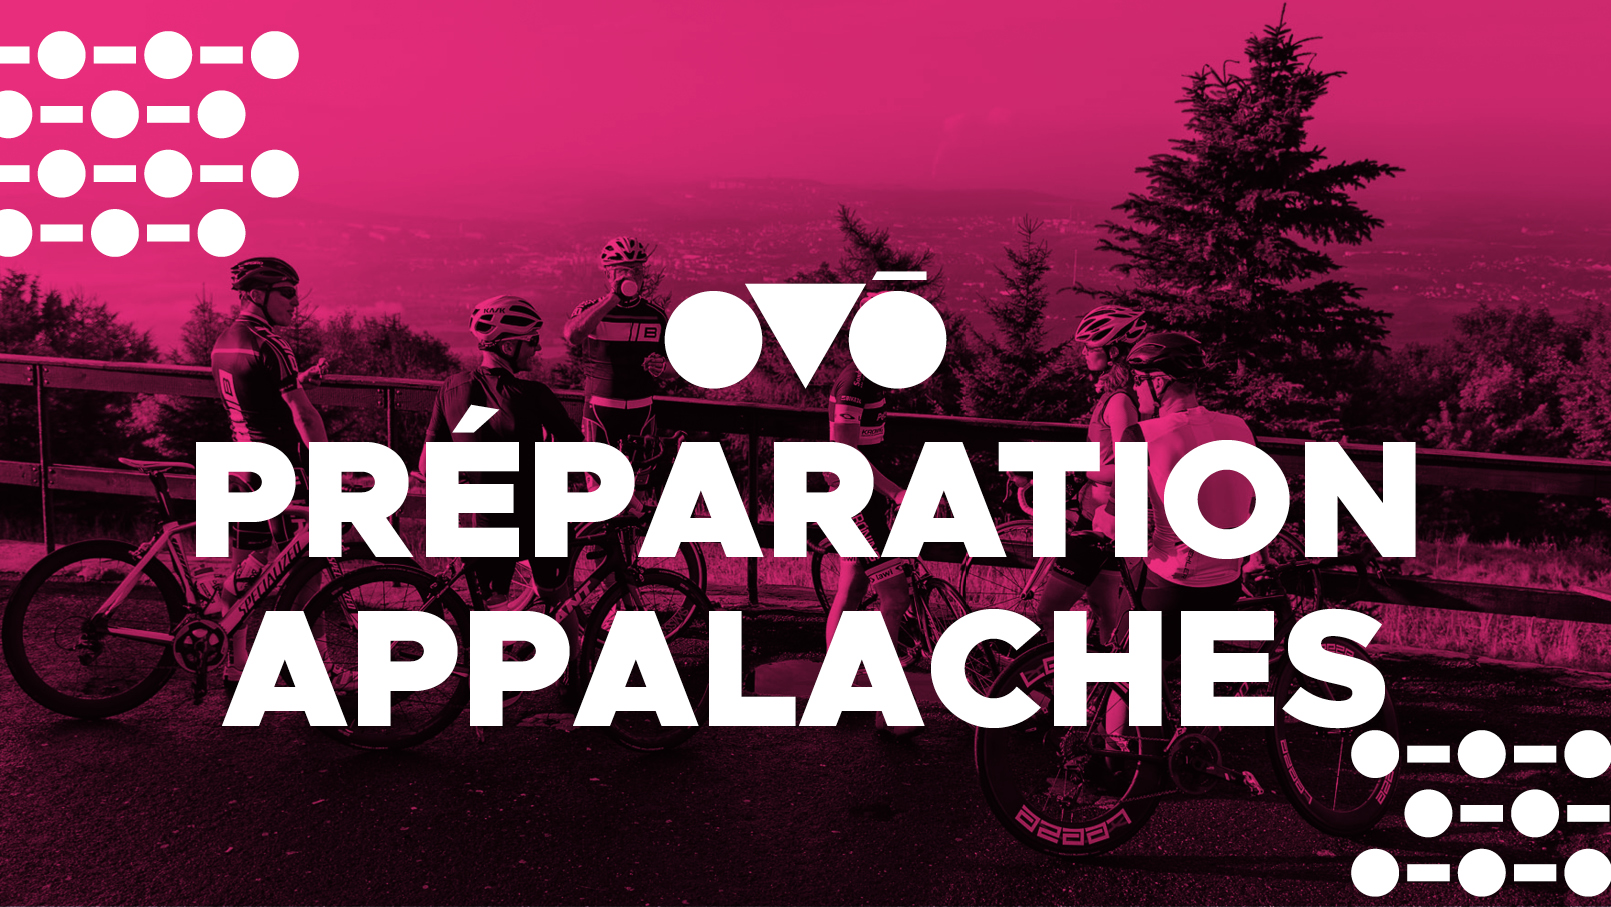 CCD_PREPARATION APPALACHES